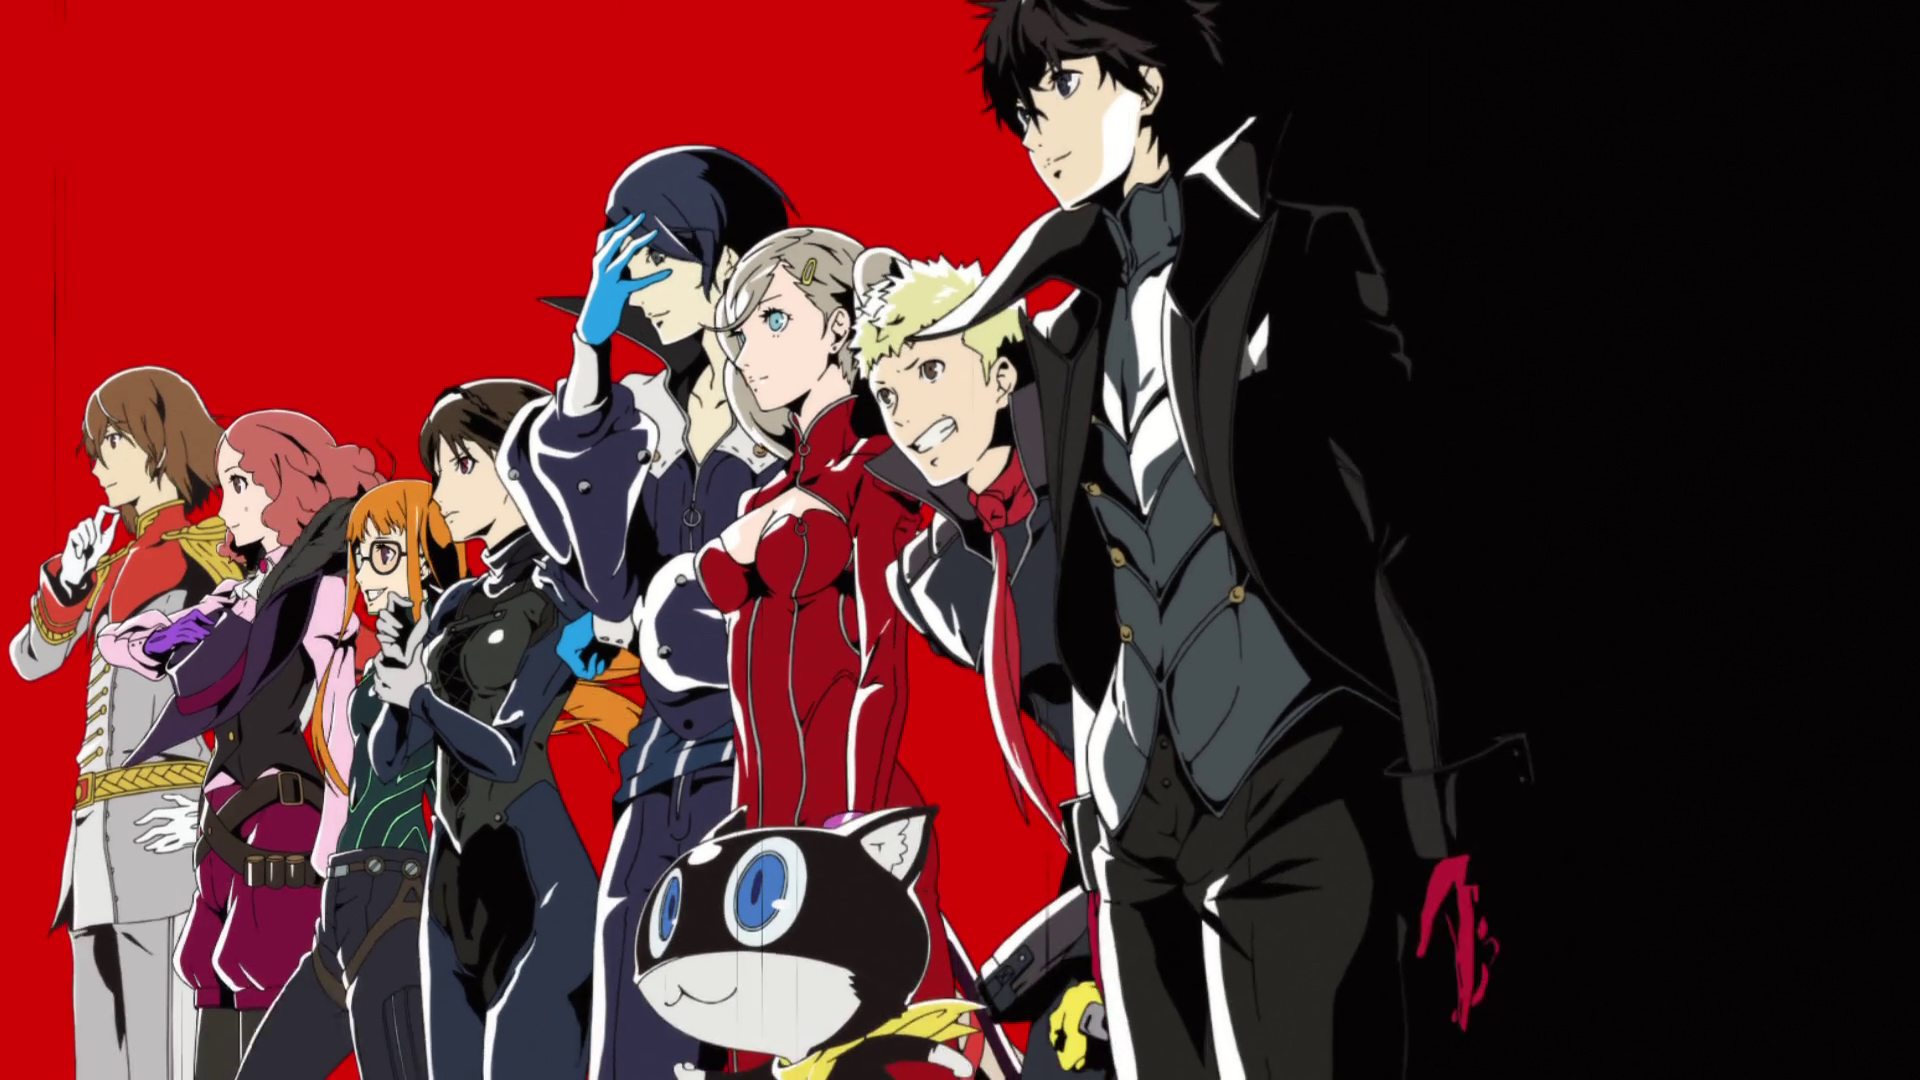 Persona 5 Royal New Trailer Shows New Combination Attack And More